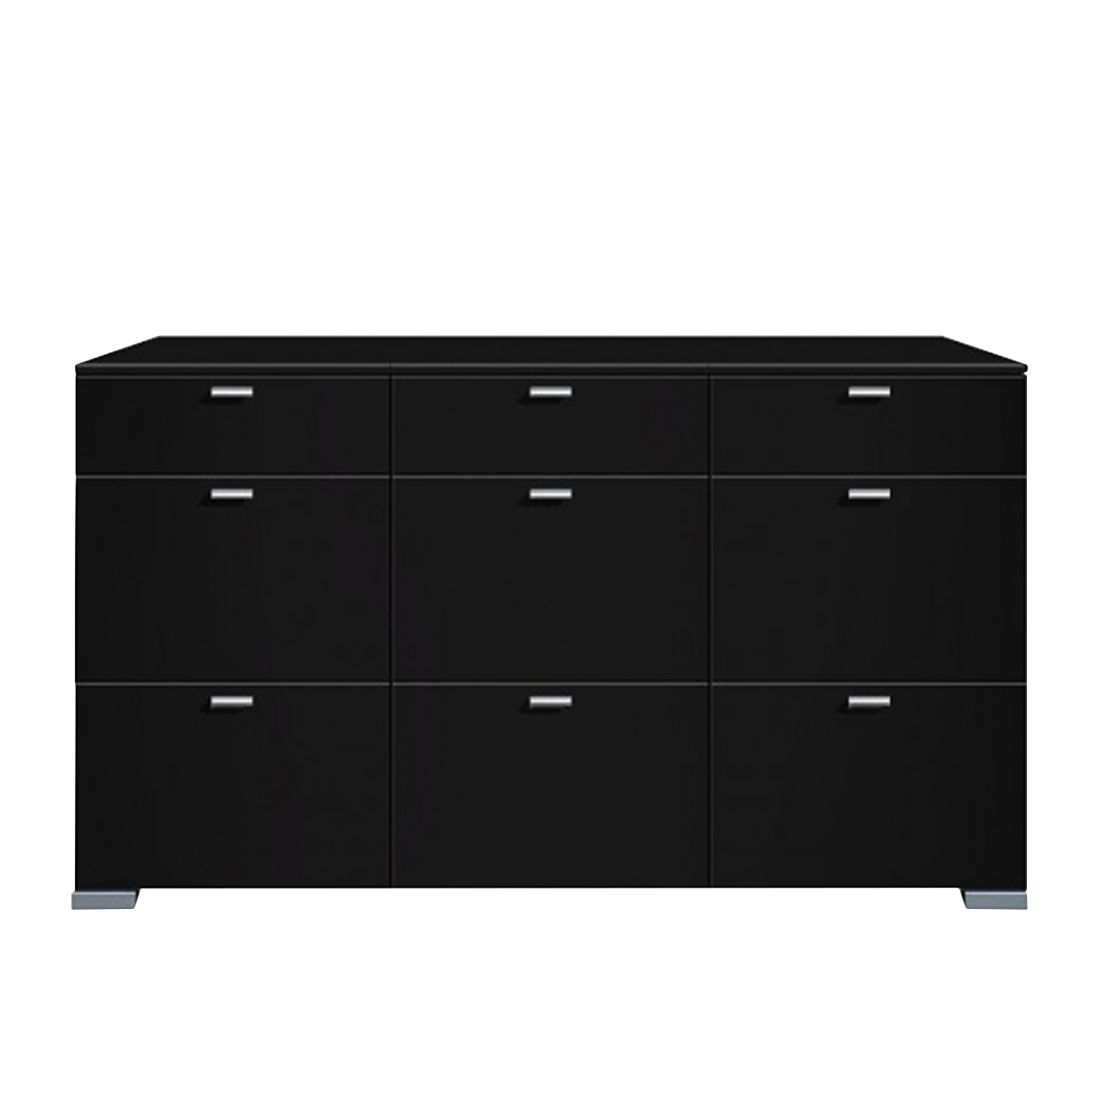 sideboard gallery schwarz sideboard gallery mit 9 schubladen schwarz. Black Bedroom Furniture Sets. Home Design Ideas